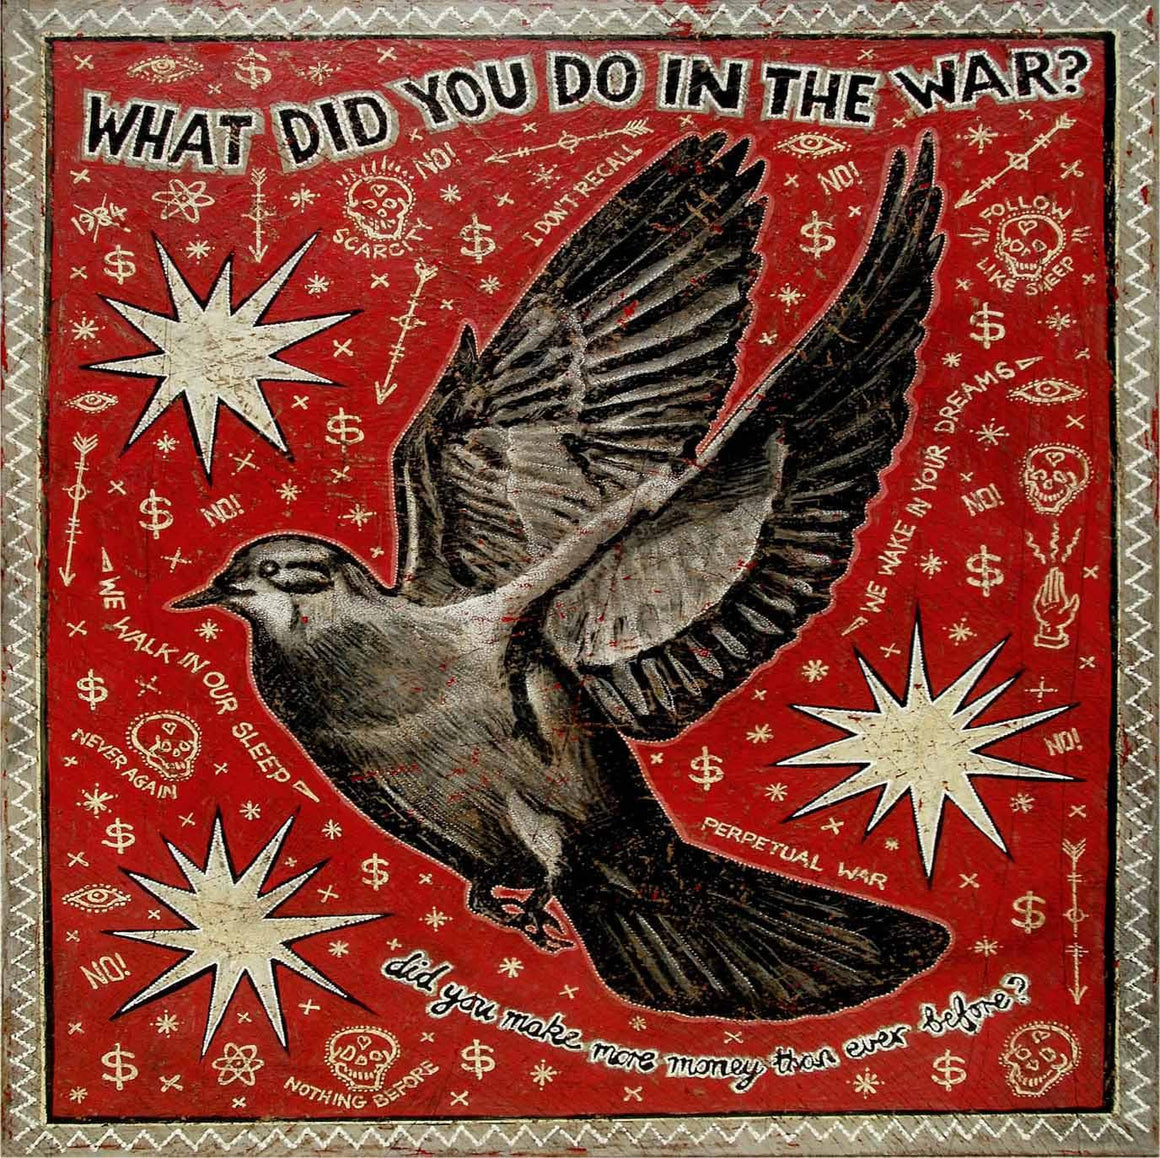 What Did You Do In The War? - Jon Langford - Yard Dog Art